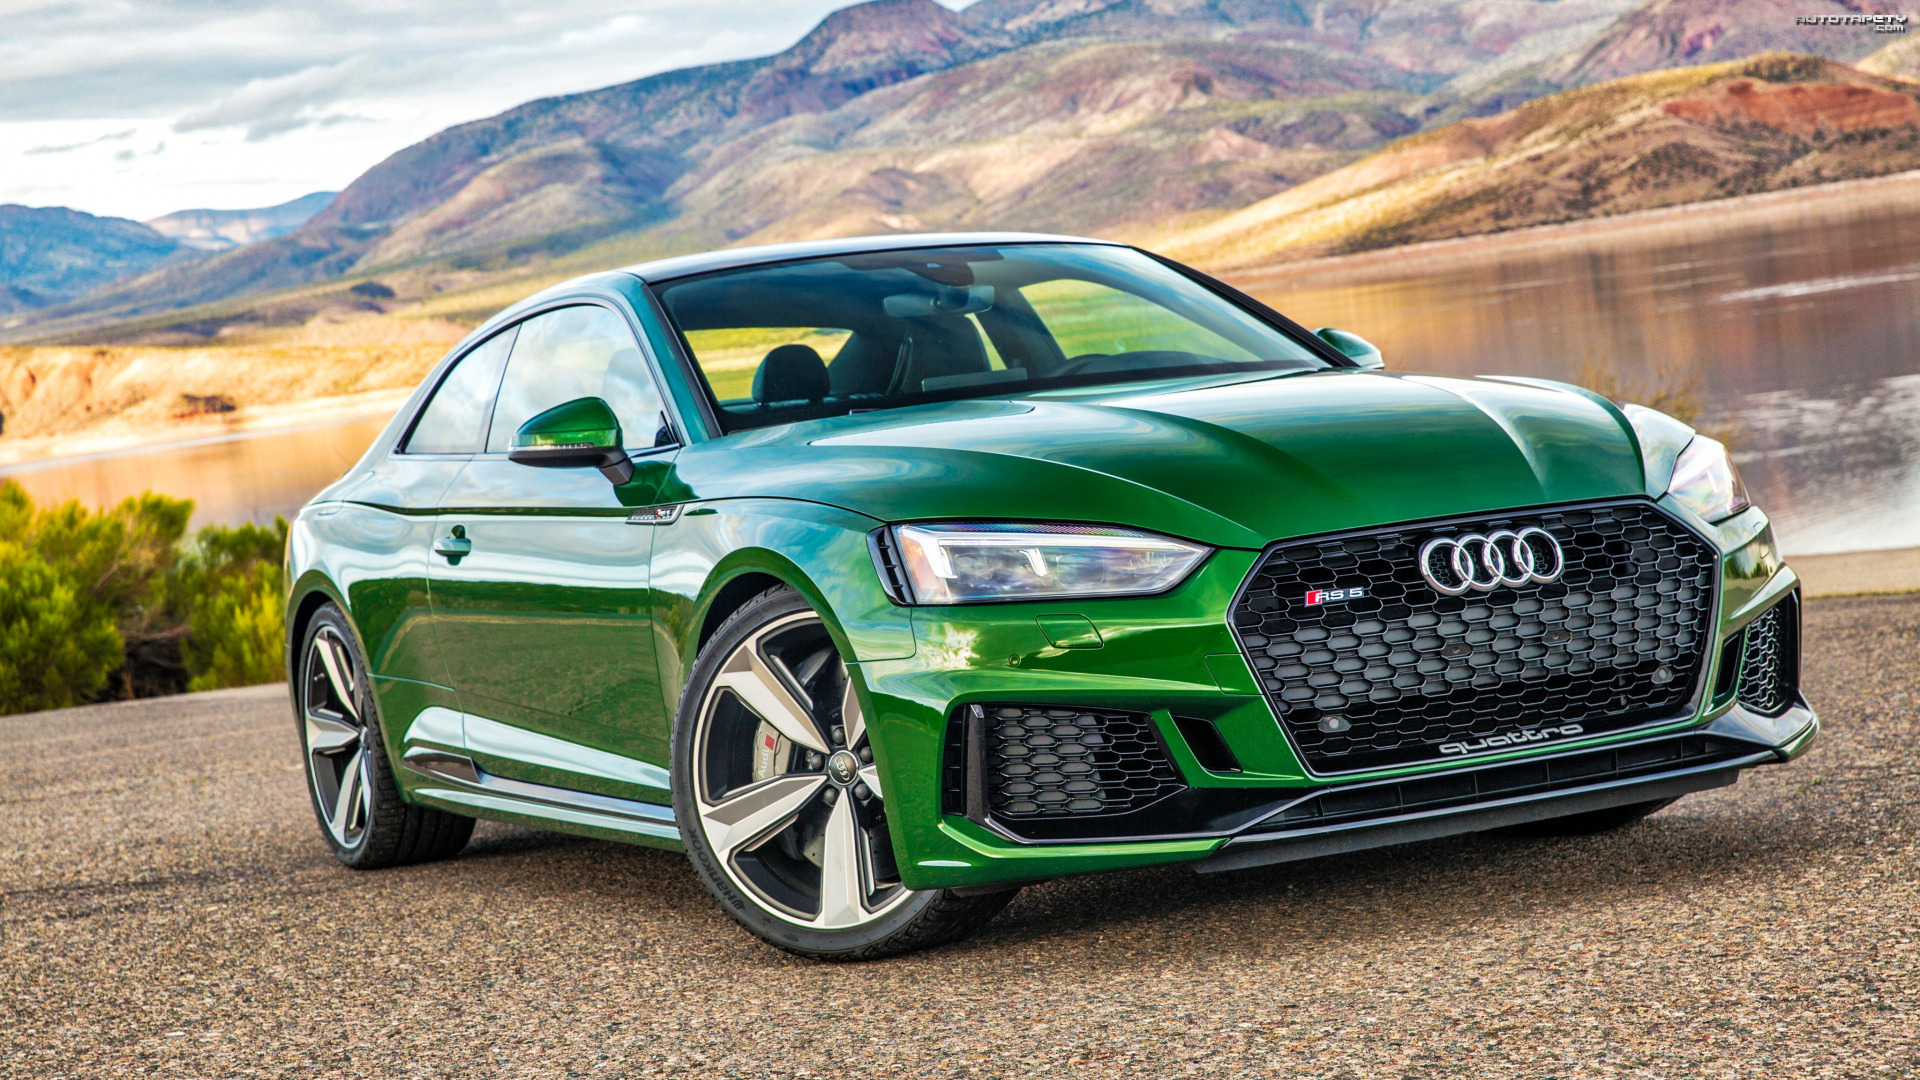 Zielone, Audi RS5 Coupe